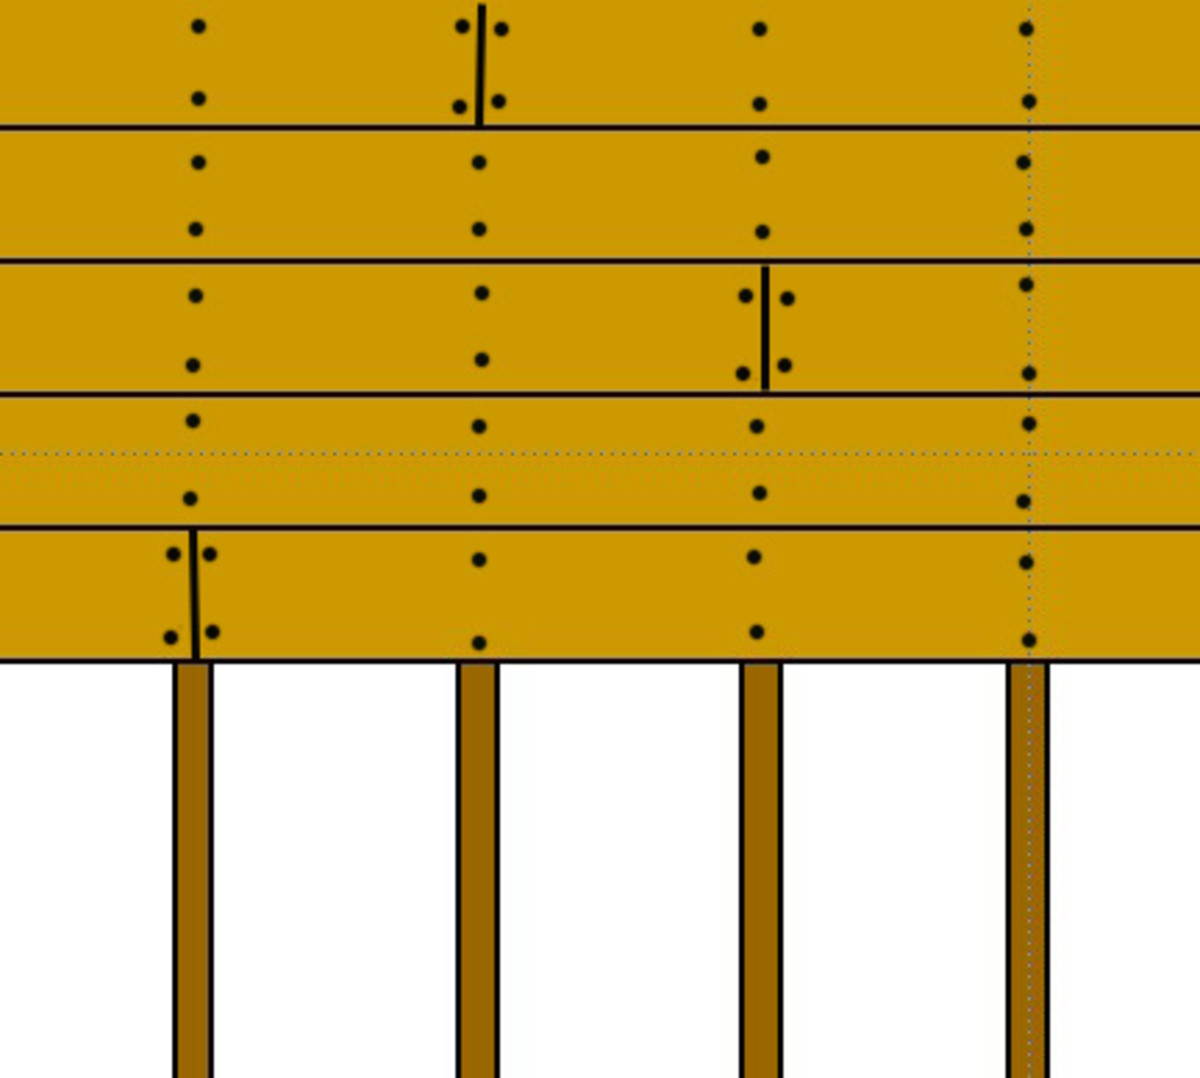 Fig 2. Example of staggered deck boards